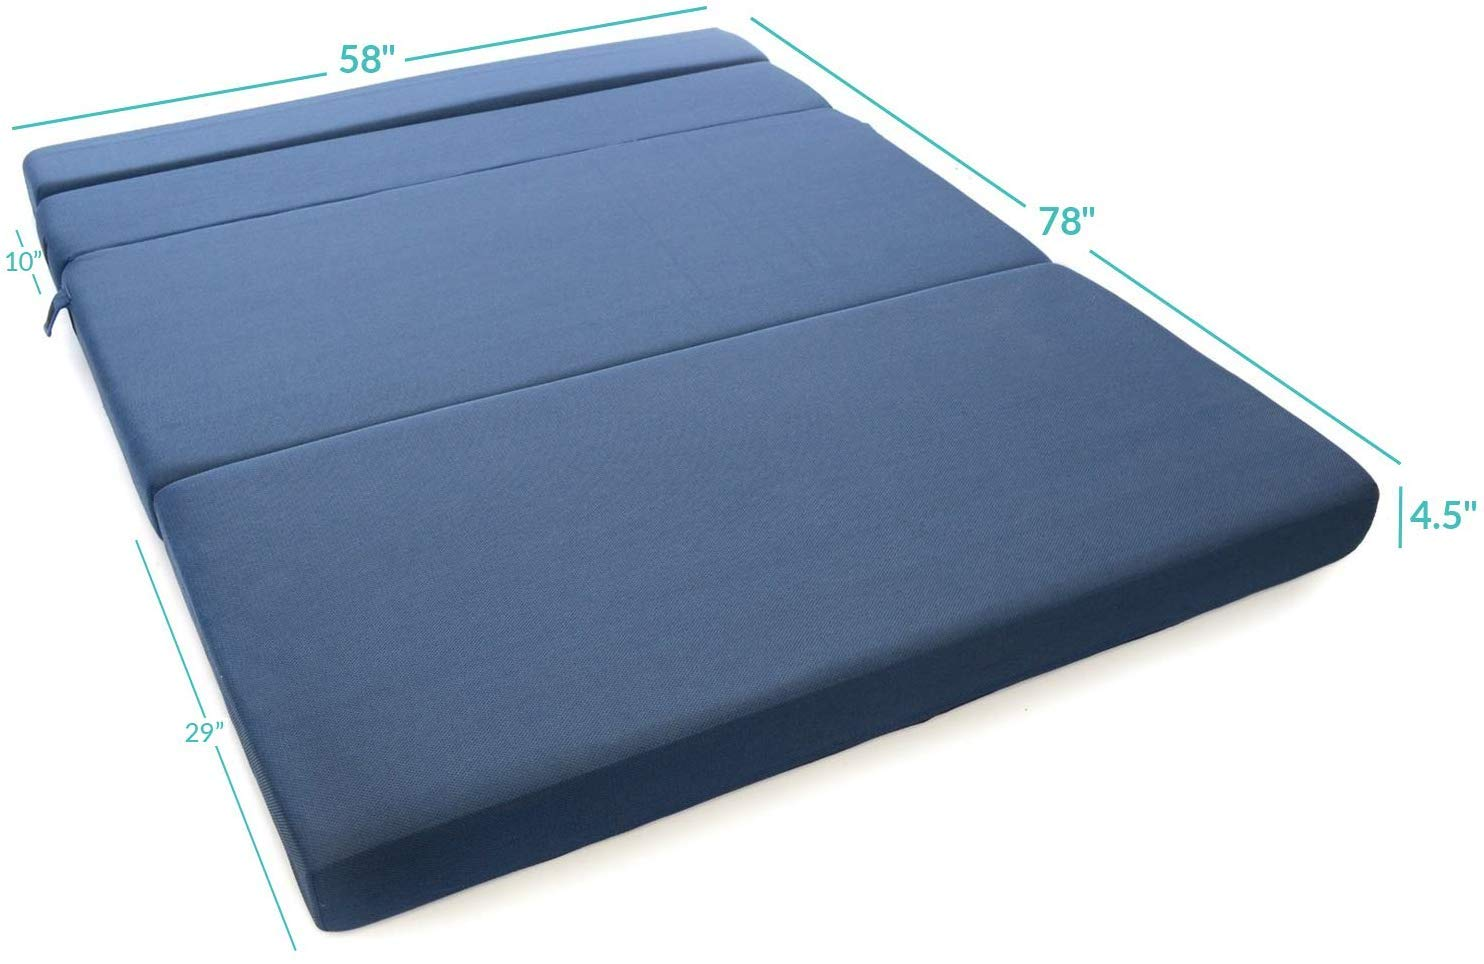 Milliard Tri-Fold Foam Folding Mattress and Sofa Bed for Guests Queen 78x58x4.5 Inch